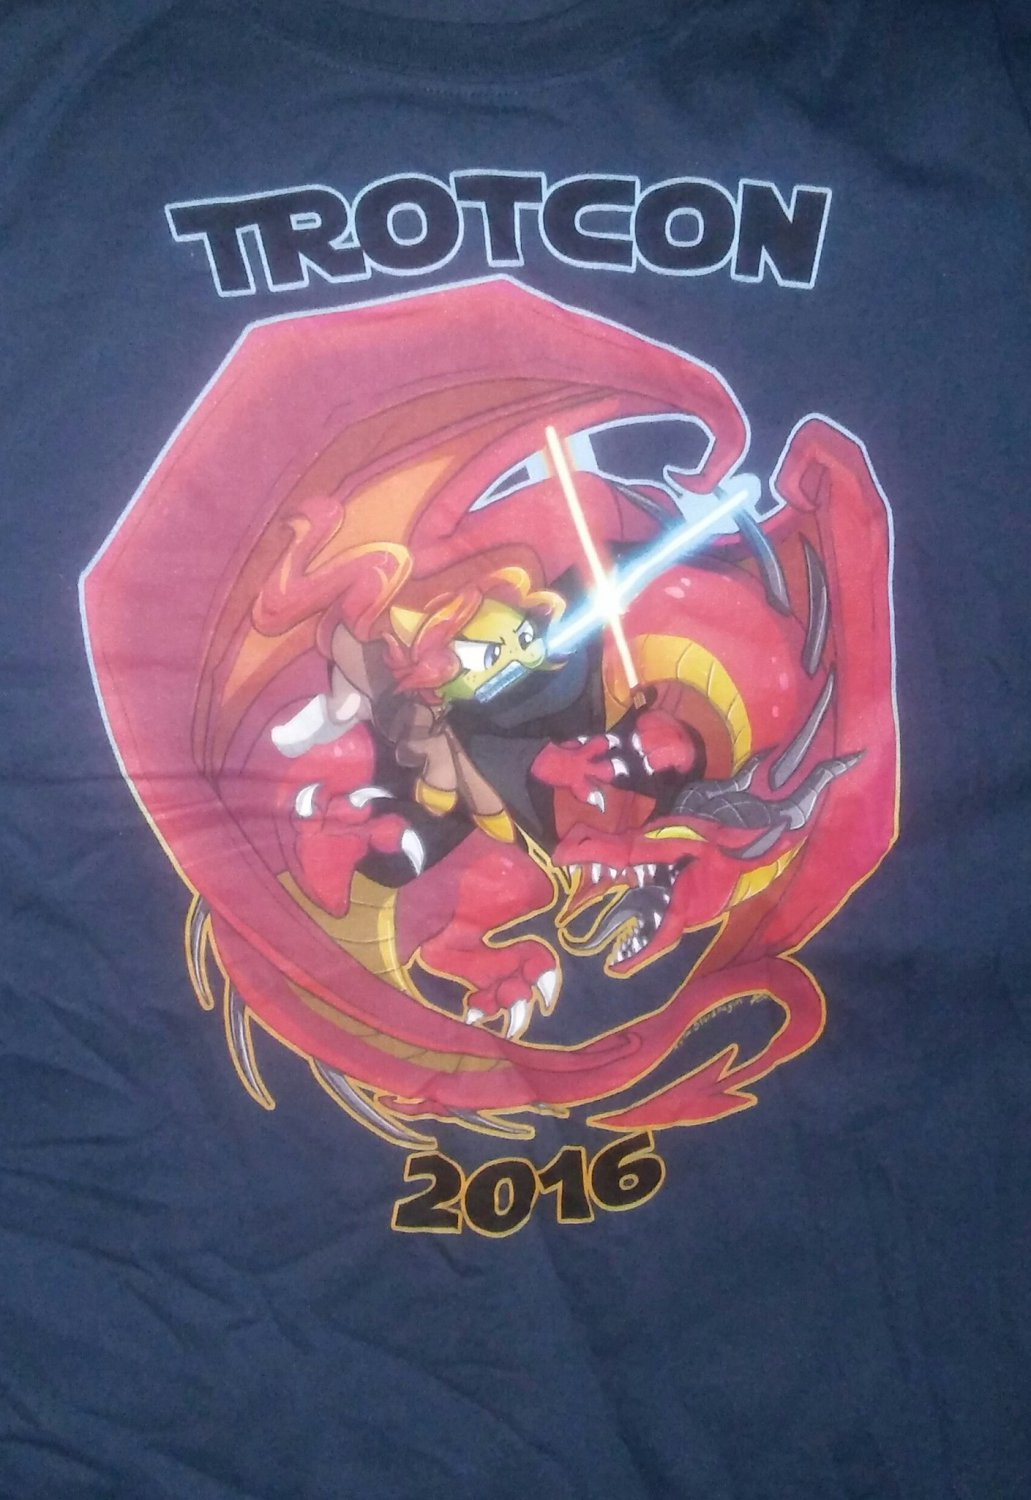 Trotcon 2016  Shirt - Large